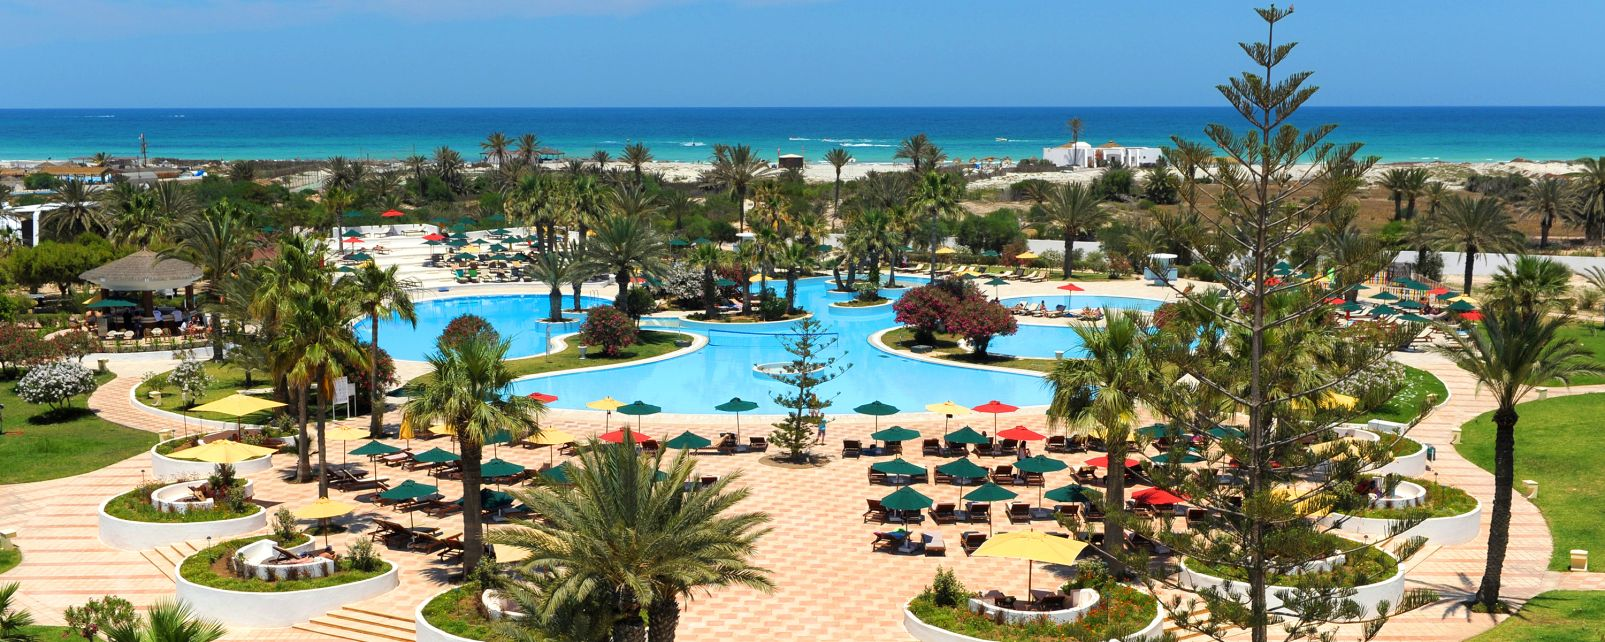 Naya Club Djerba Plaza Thalasso Spa